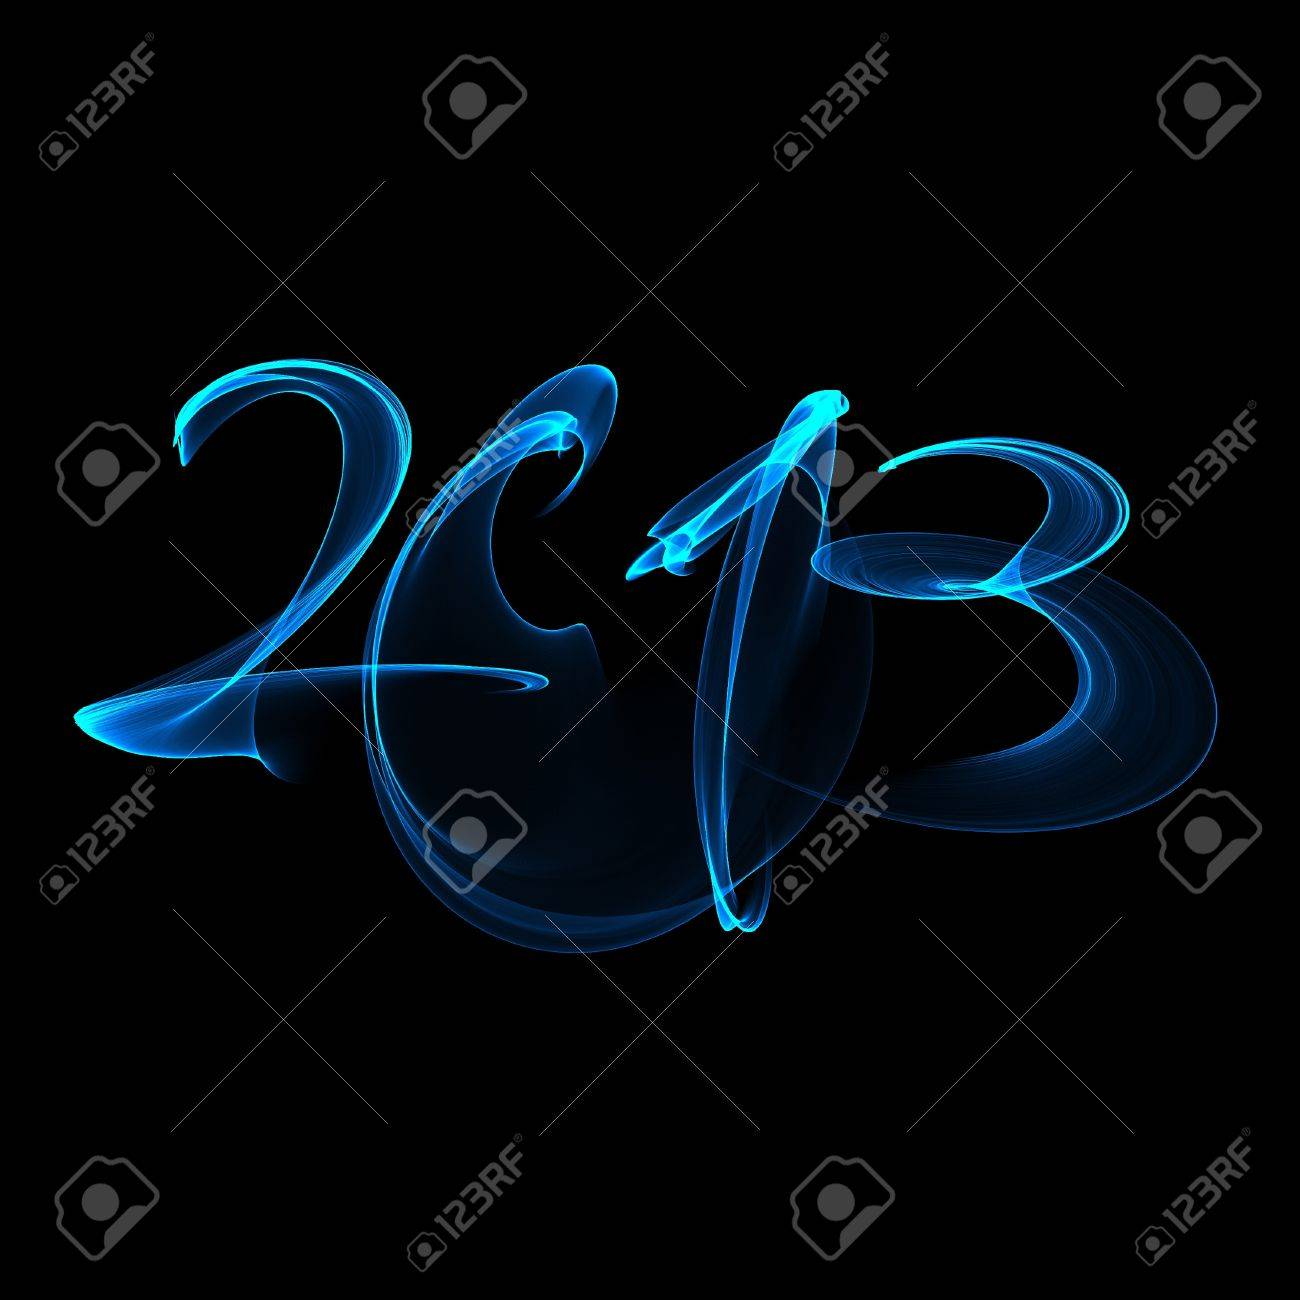 New Year 2013 blue flame Stock Photo - 15964915